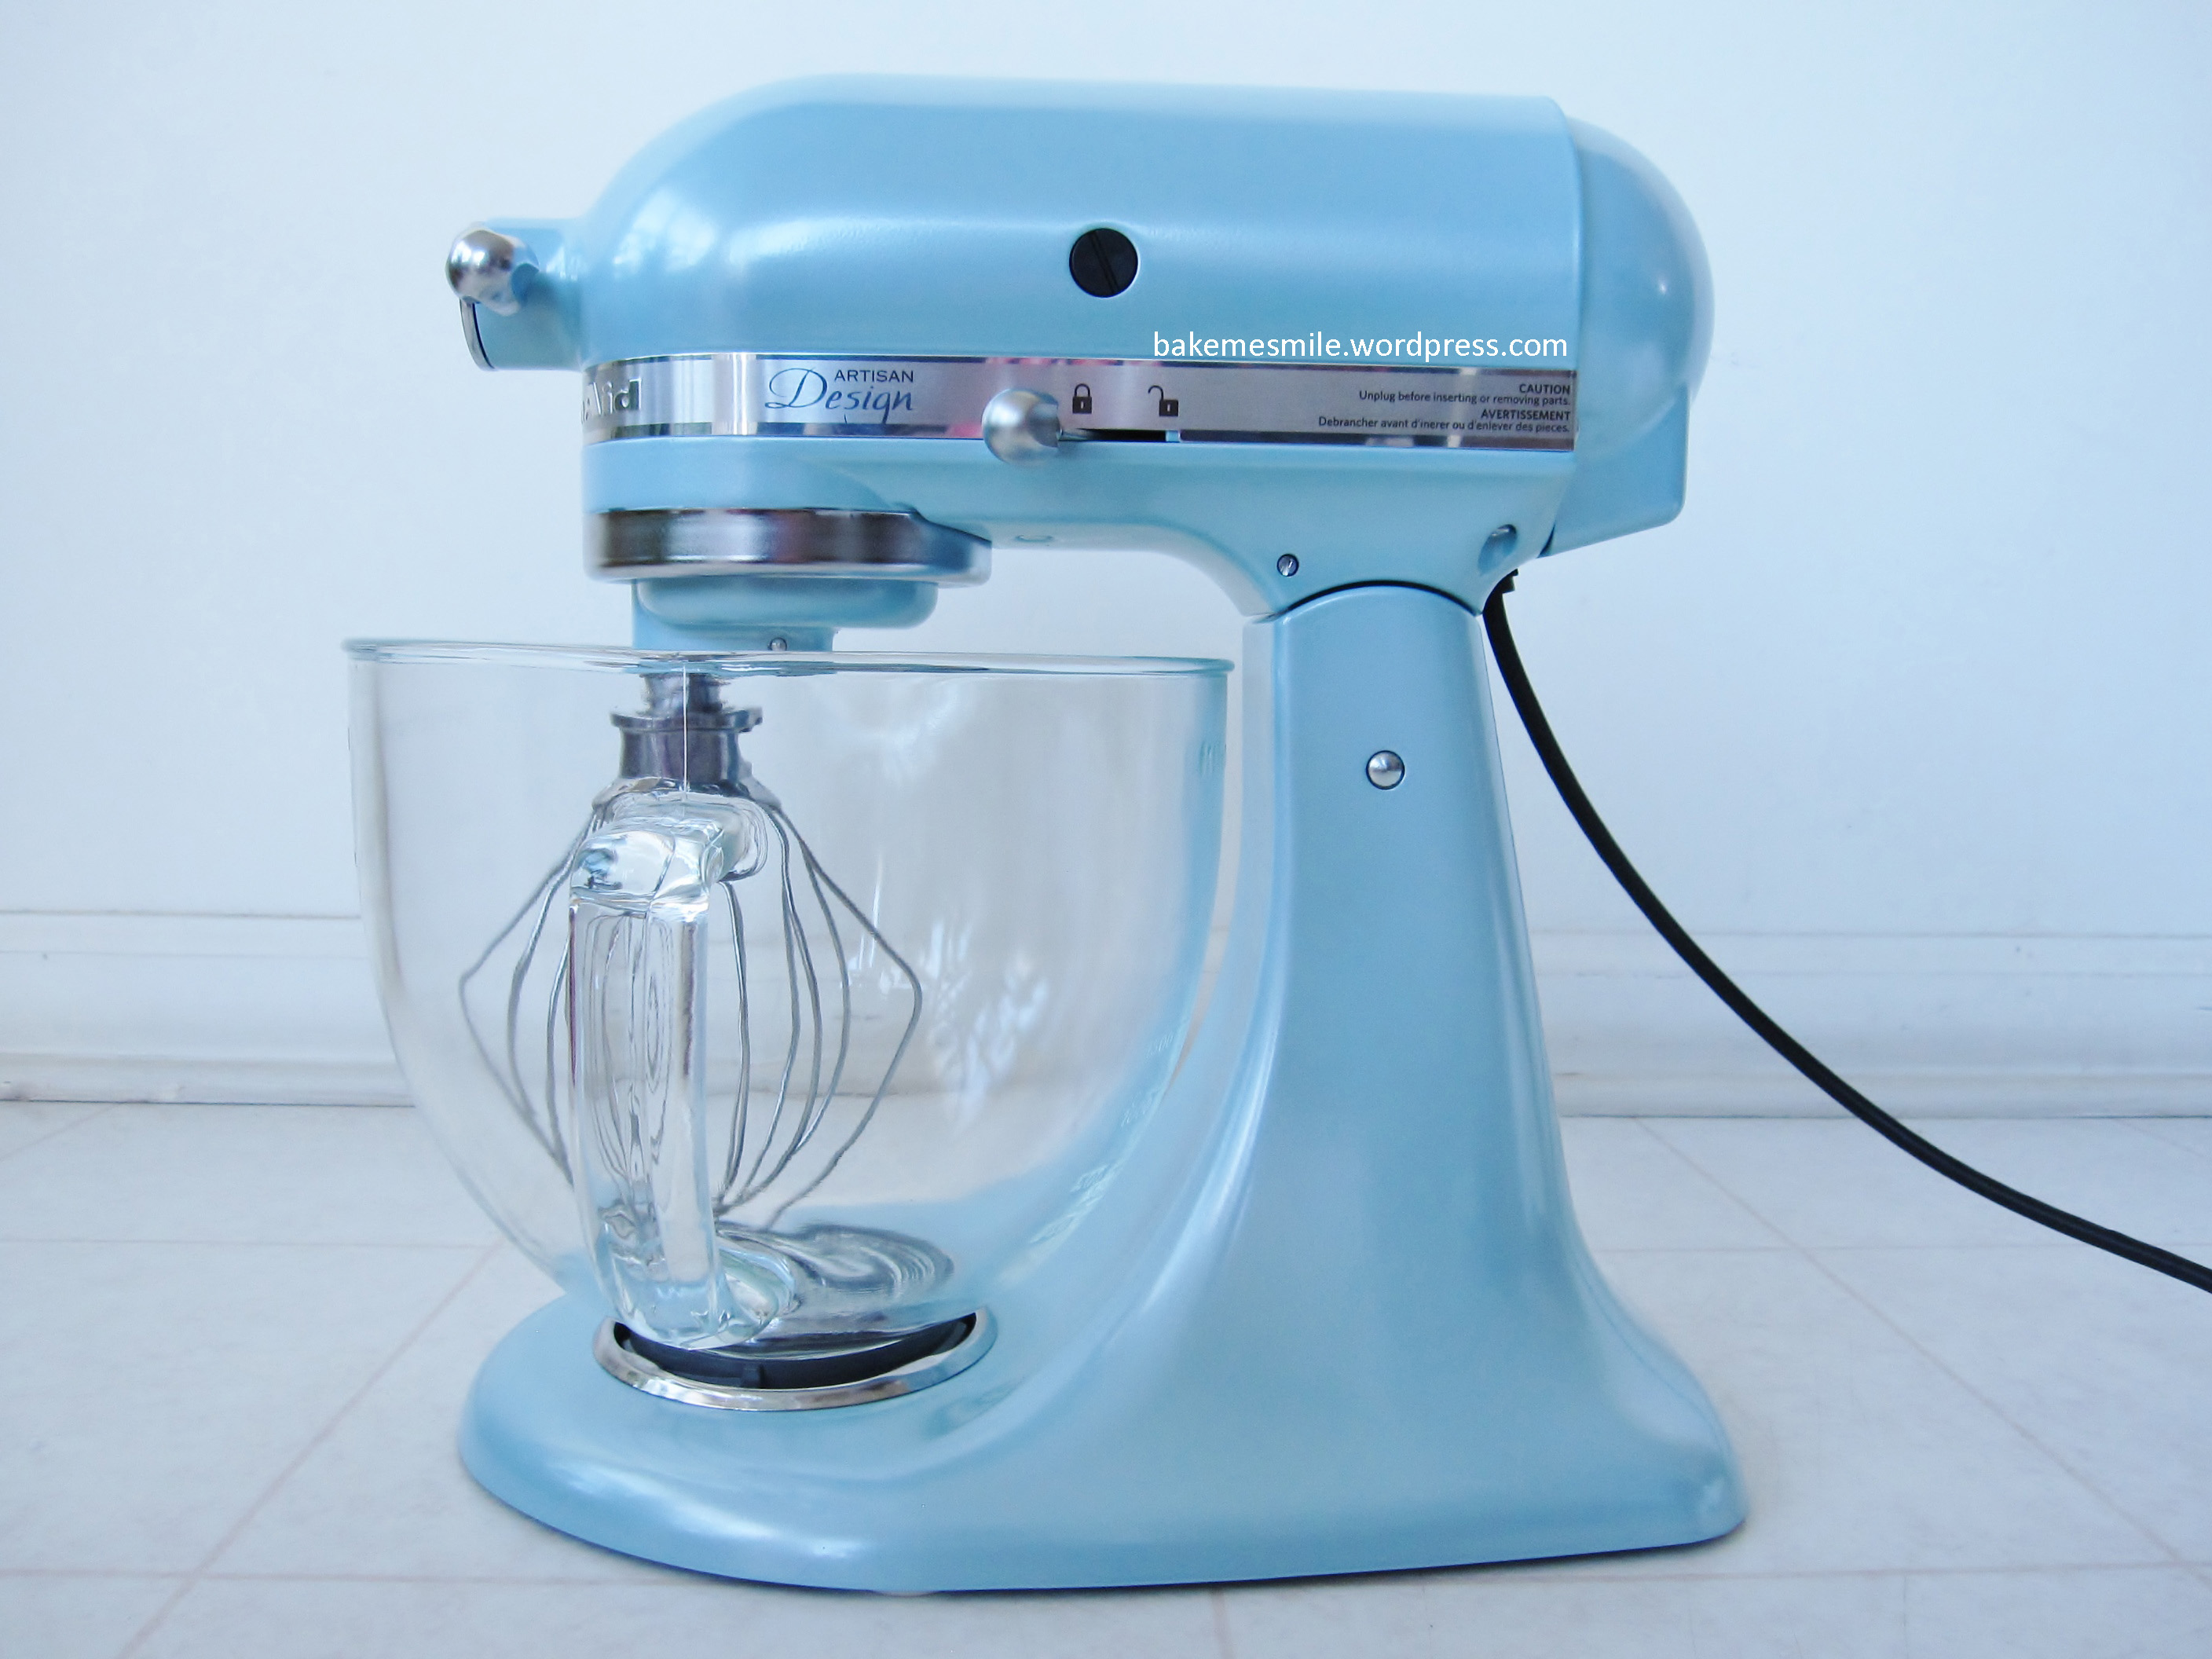 Classic Series Stand Mixer. Perfect for kitchens of all sizes, the classic series stand mixer delivers the power and durability to mix large batches. 8 cup flour rahipclr.gas: